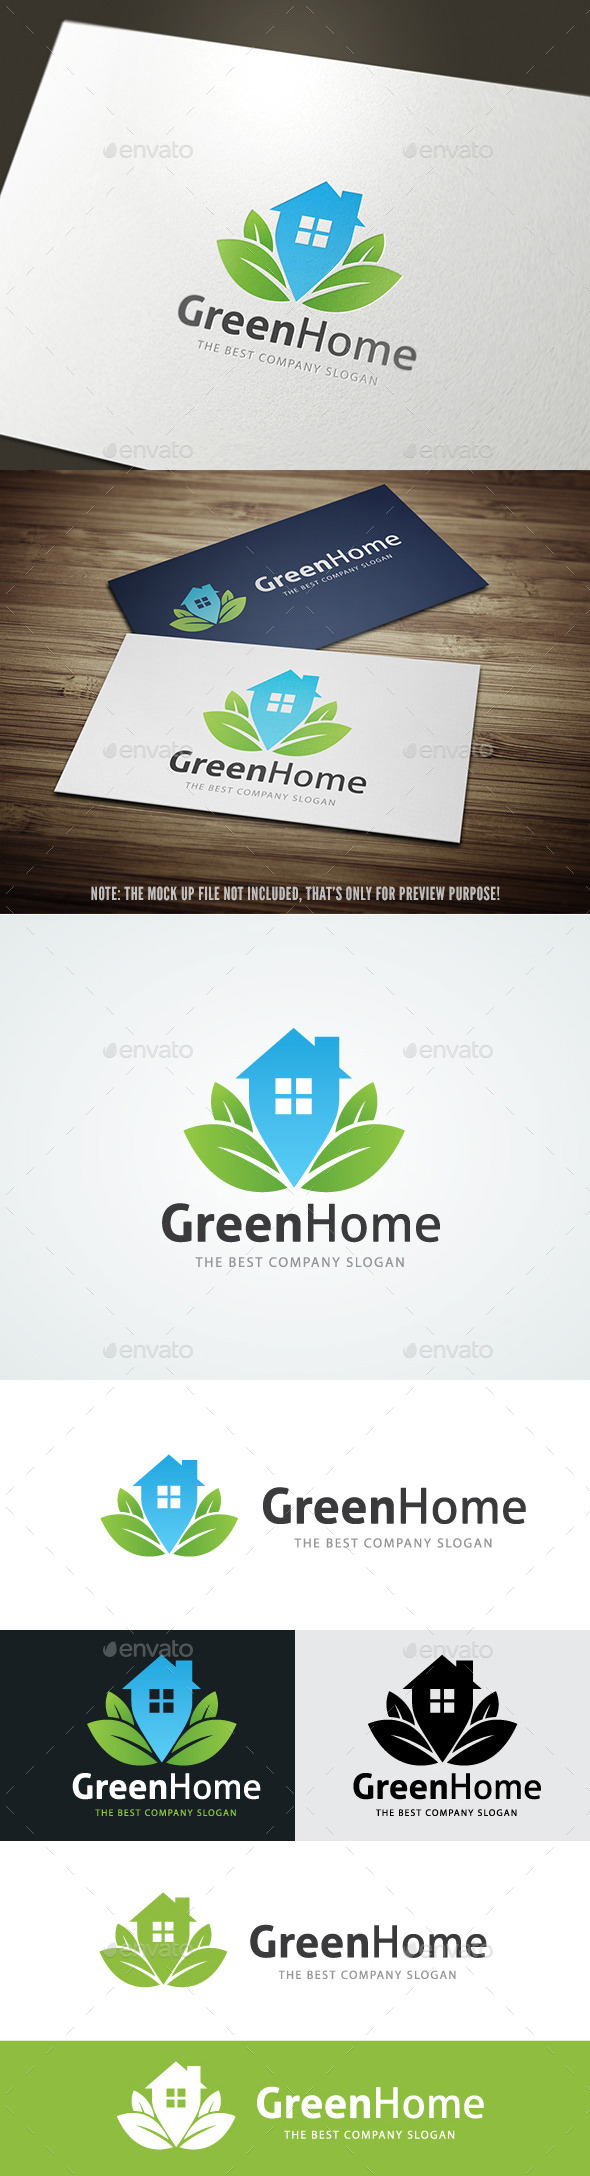 GraphicRiver Green Home 9577577